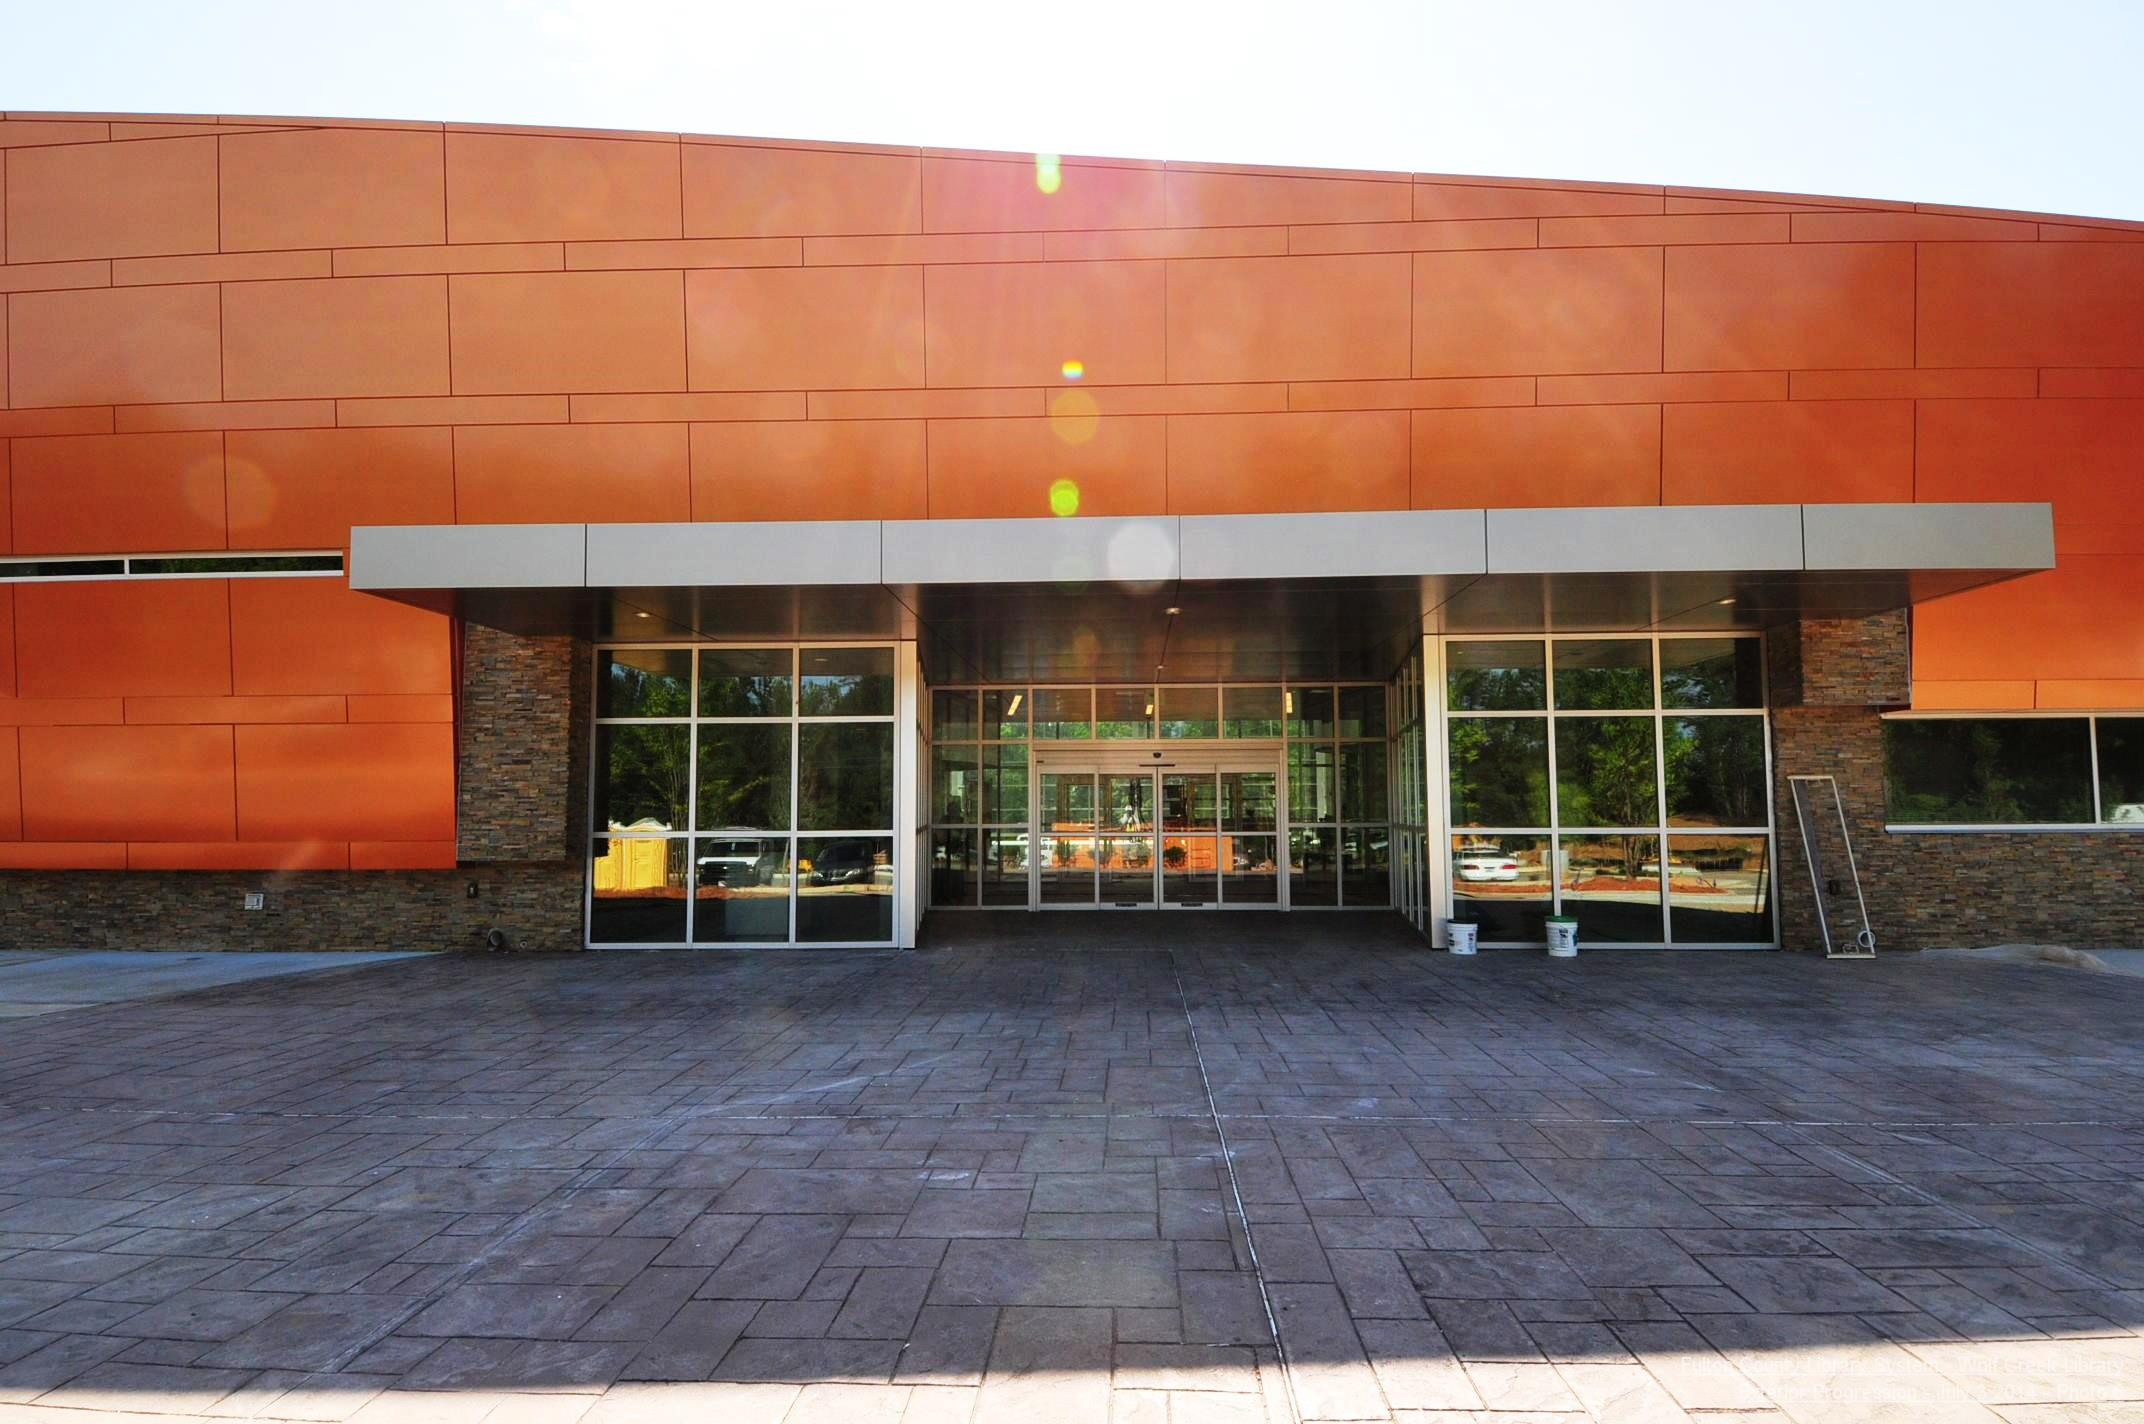 The Communitys Living Room: Wolf Creek Library